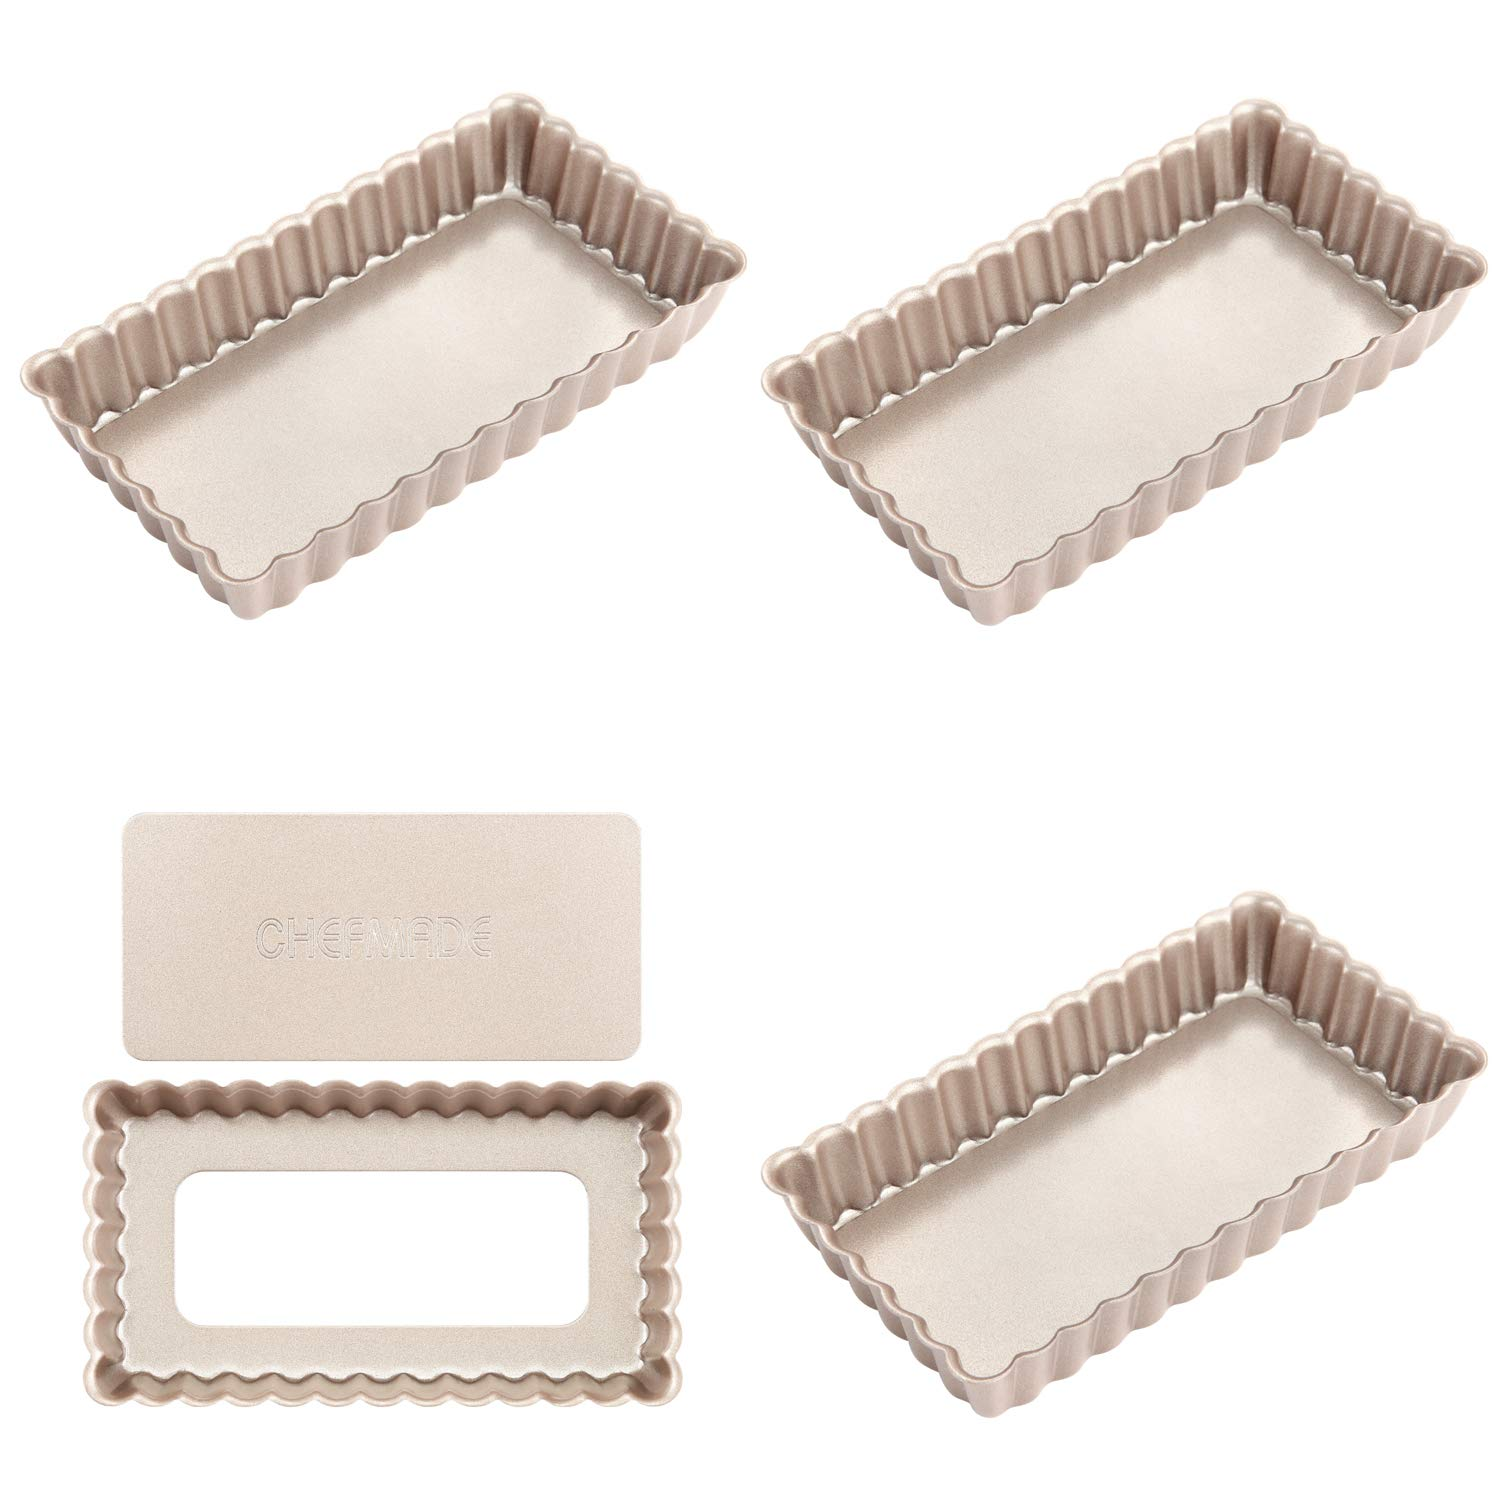 CHEFMADE Mini Rectangular Quiche Pan Set with Removable Loose Bottom, 4PCS 4-Inch Non-stick Carbon Steel Tart pan, FDA Approved for Oven Baking (Champagne Gold)